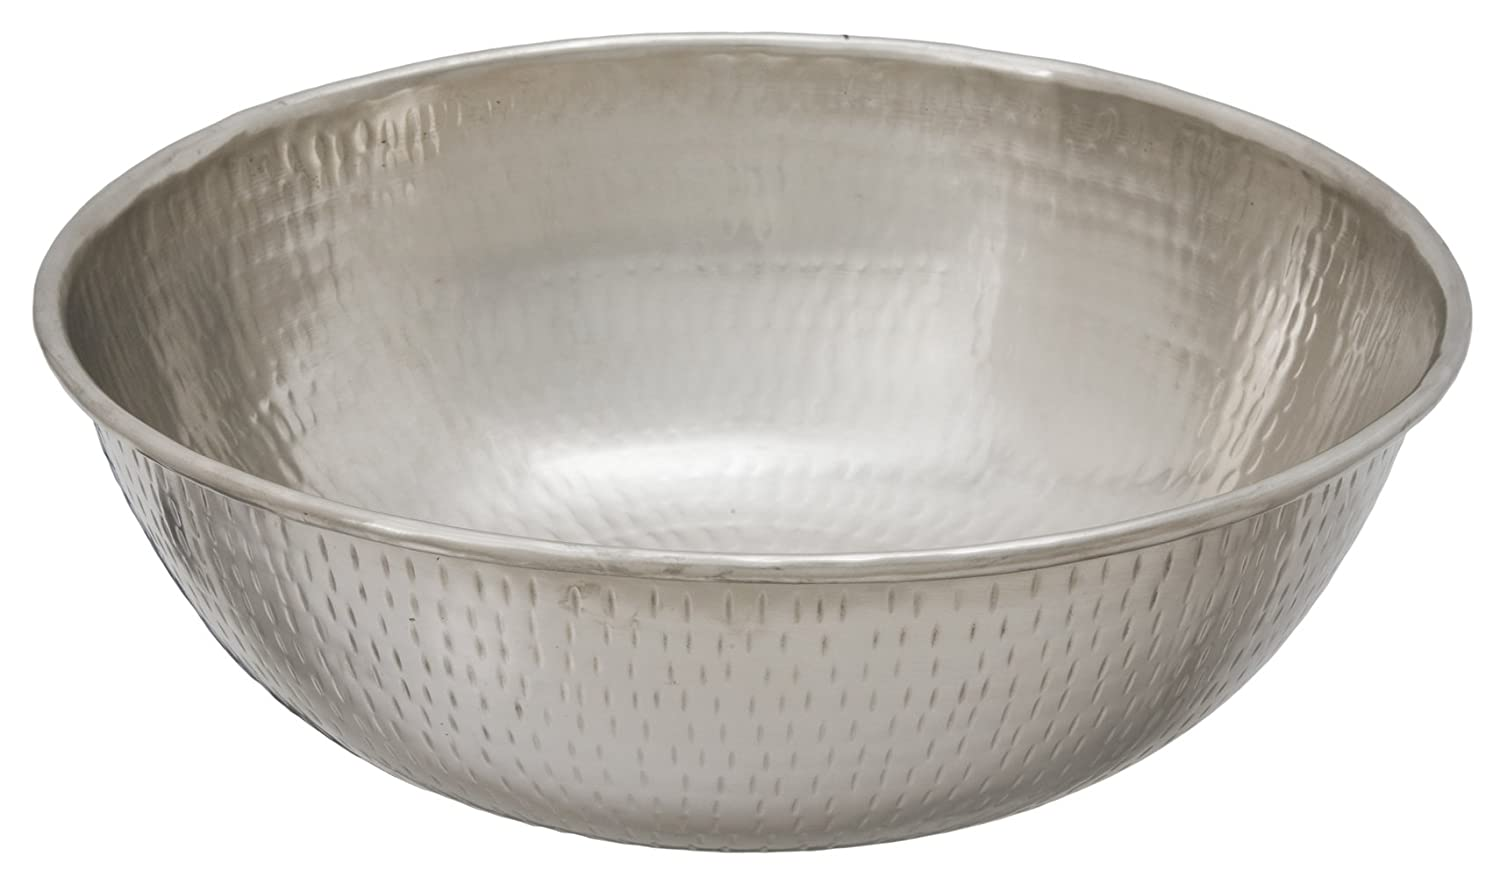 Sinkology SB301-14N Bohr Hammered Nickel Vessel Bath Sink, 14